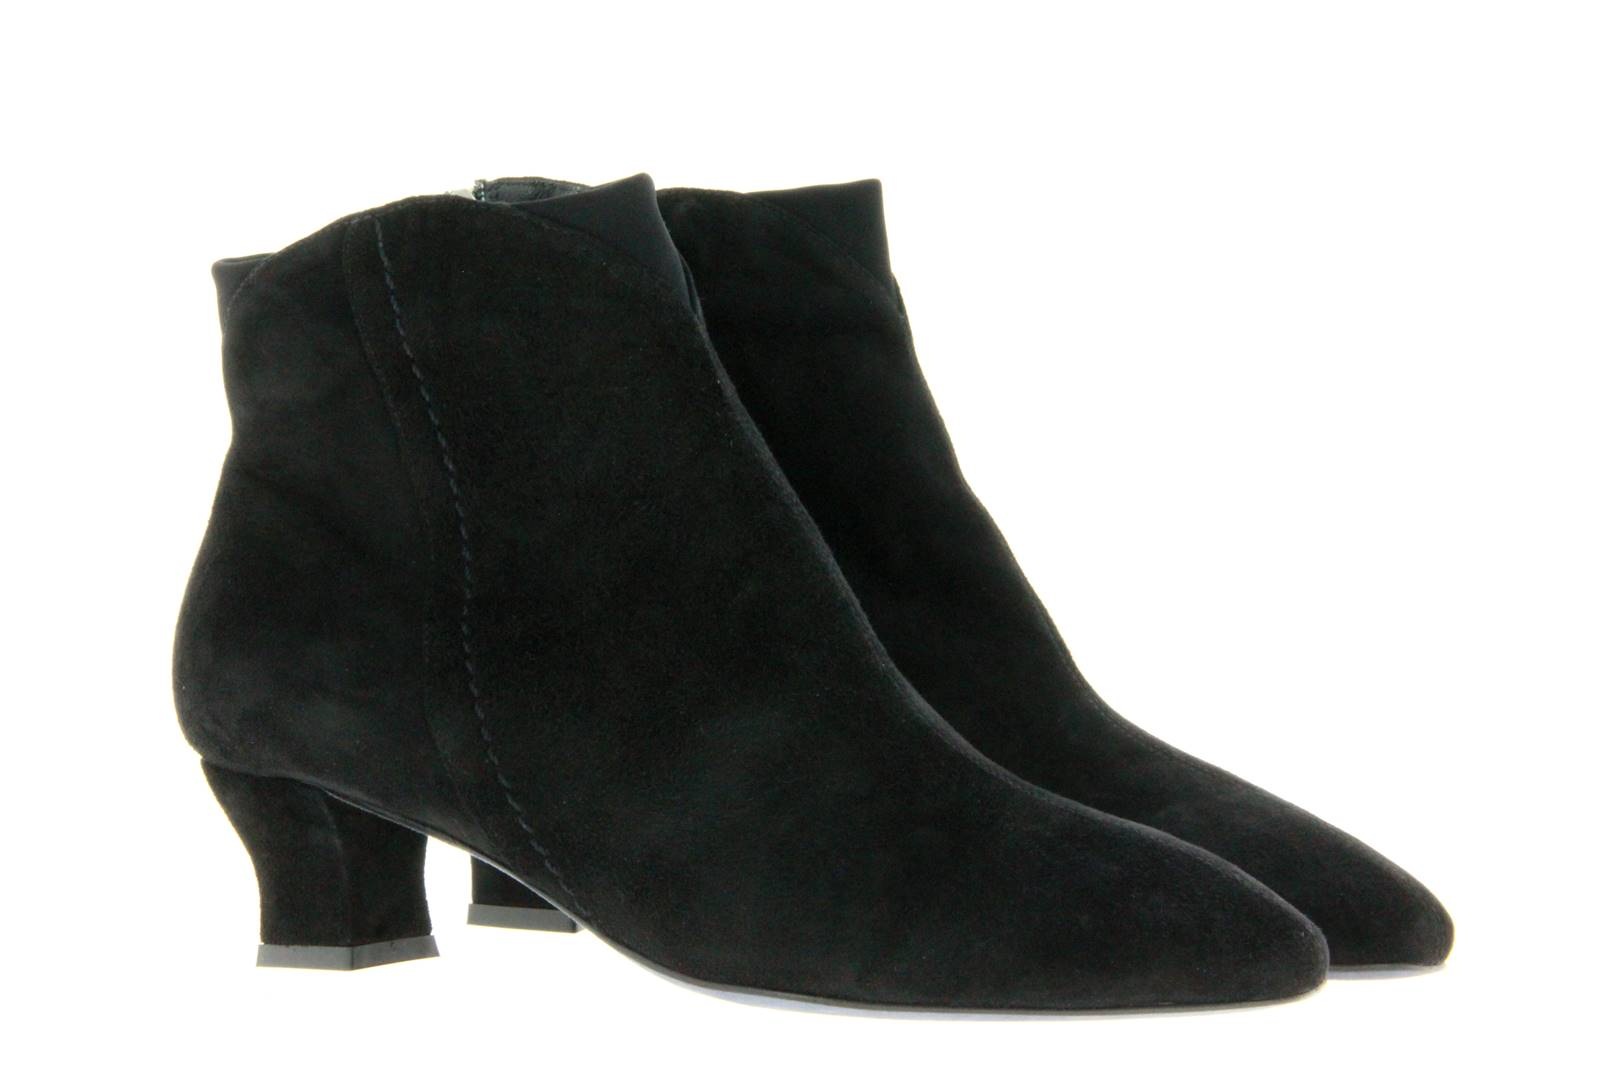 Thierry Rabotin ankle boots lined RITZ CAMOSCIO NERO